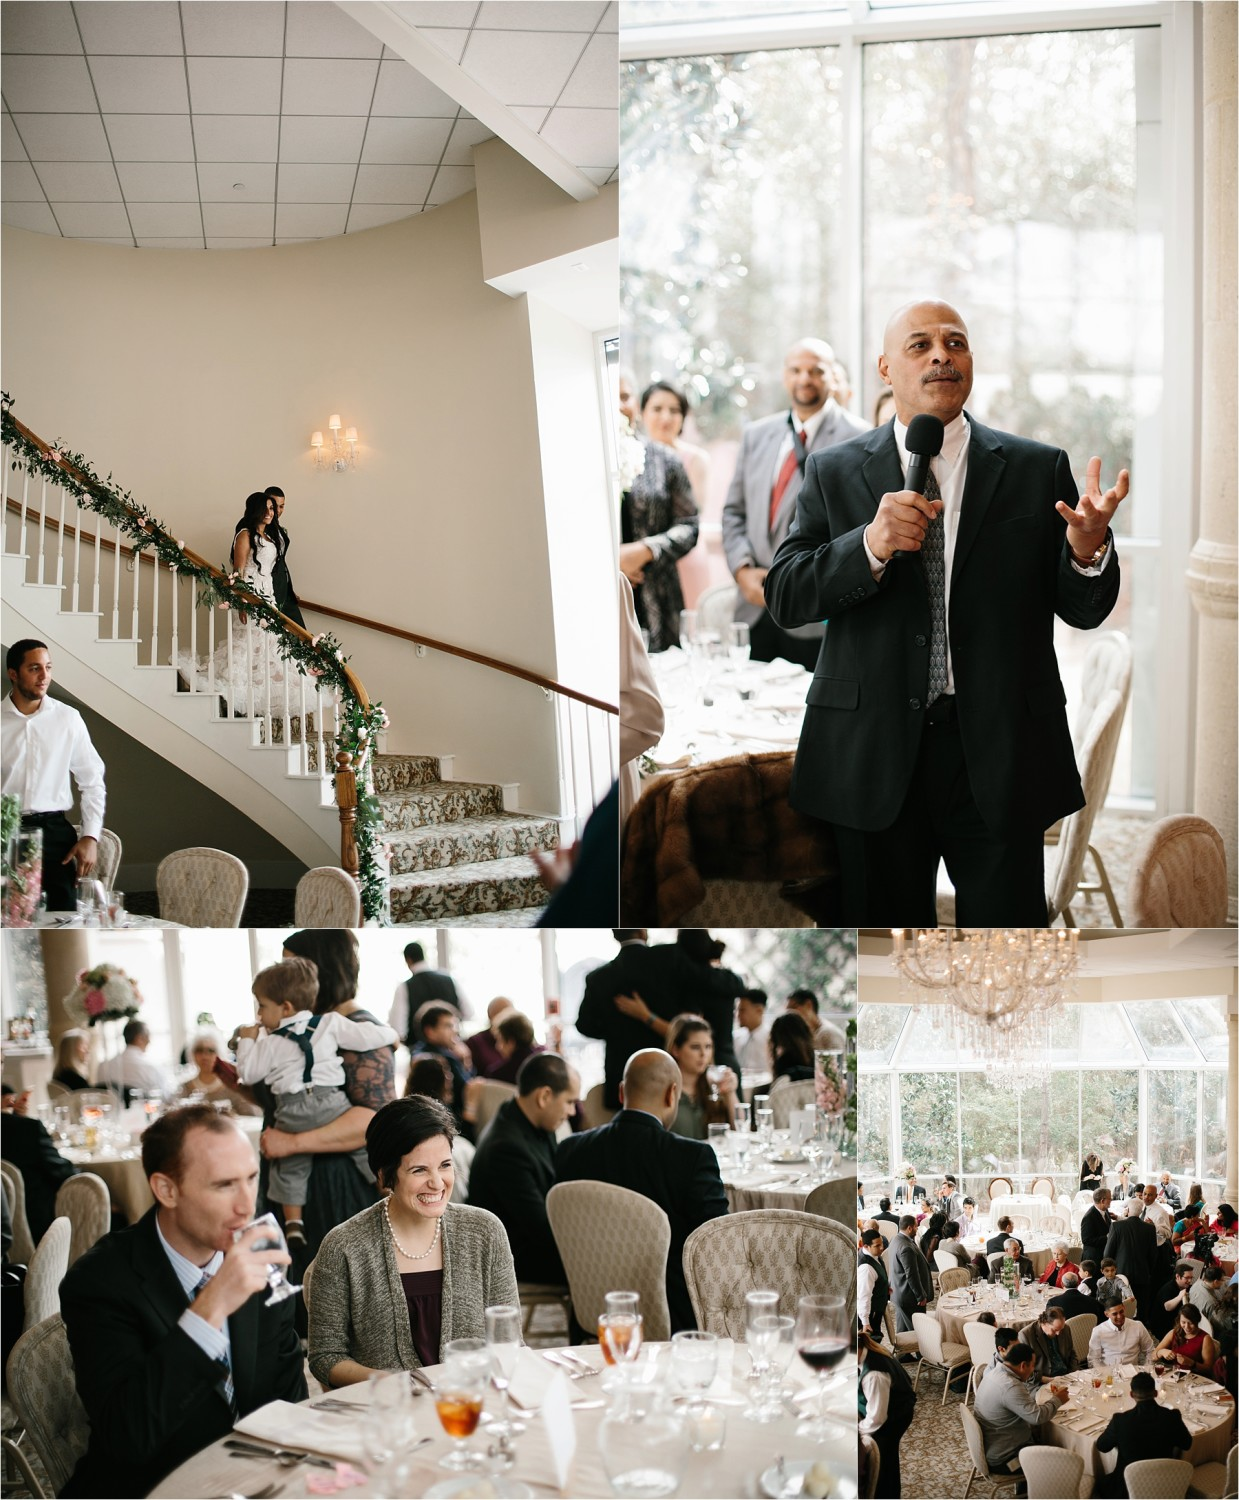 Jeanpaul + Ann __ a colorful wedding at Ashton Gardens in Houston TX by North Texas Wedding Photographer Rachel Meagan Photography _ 38